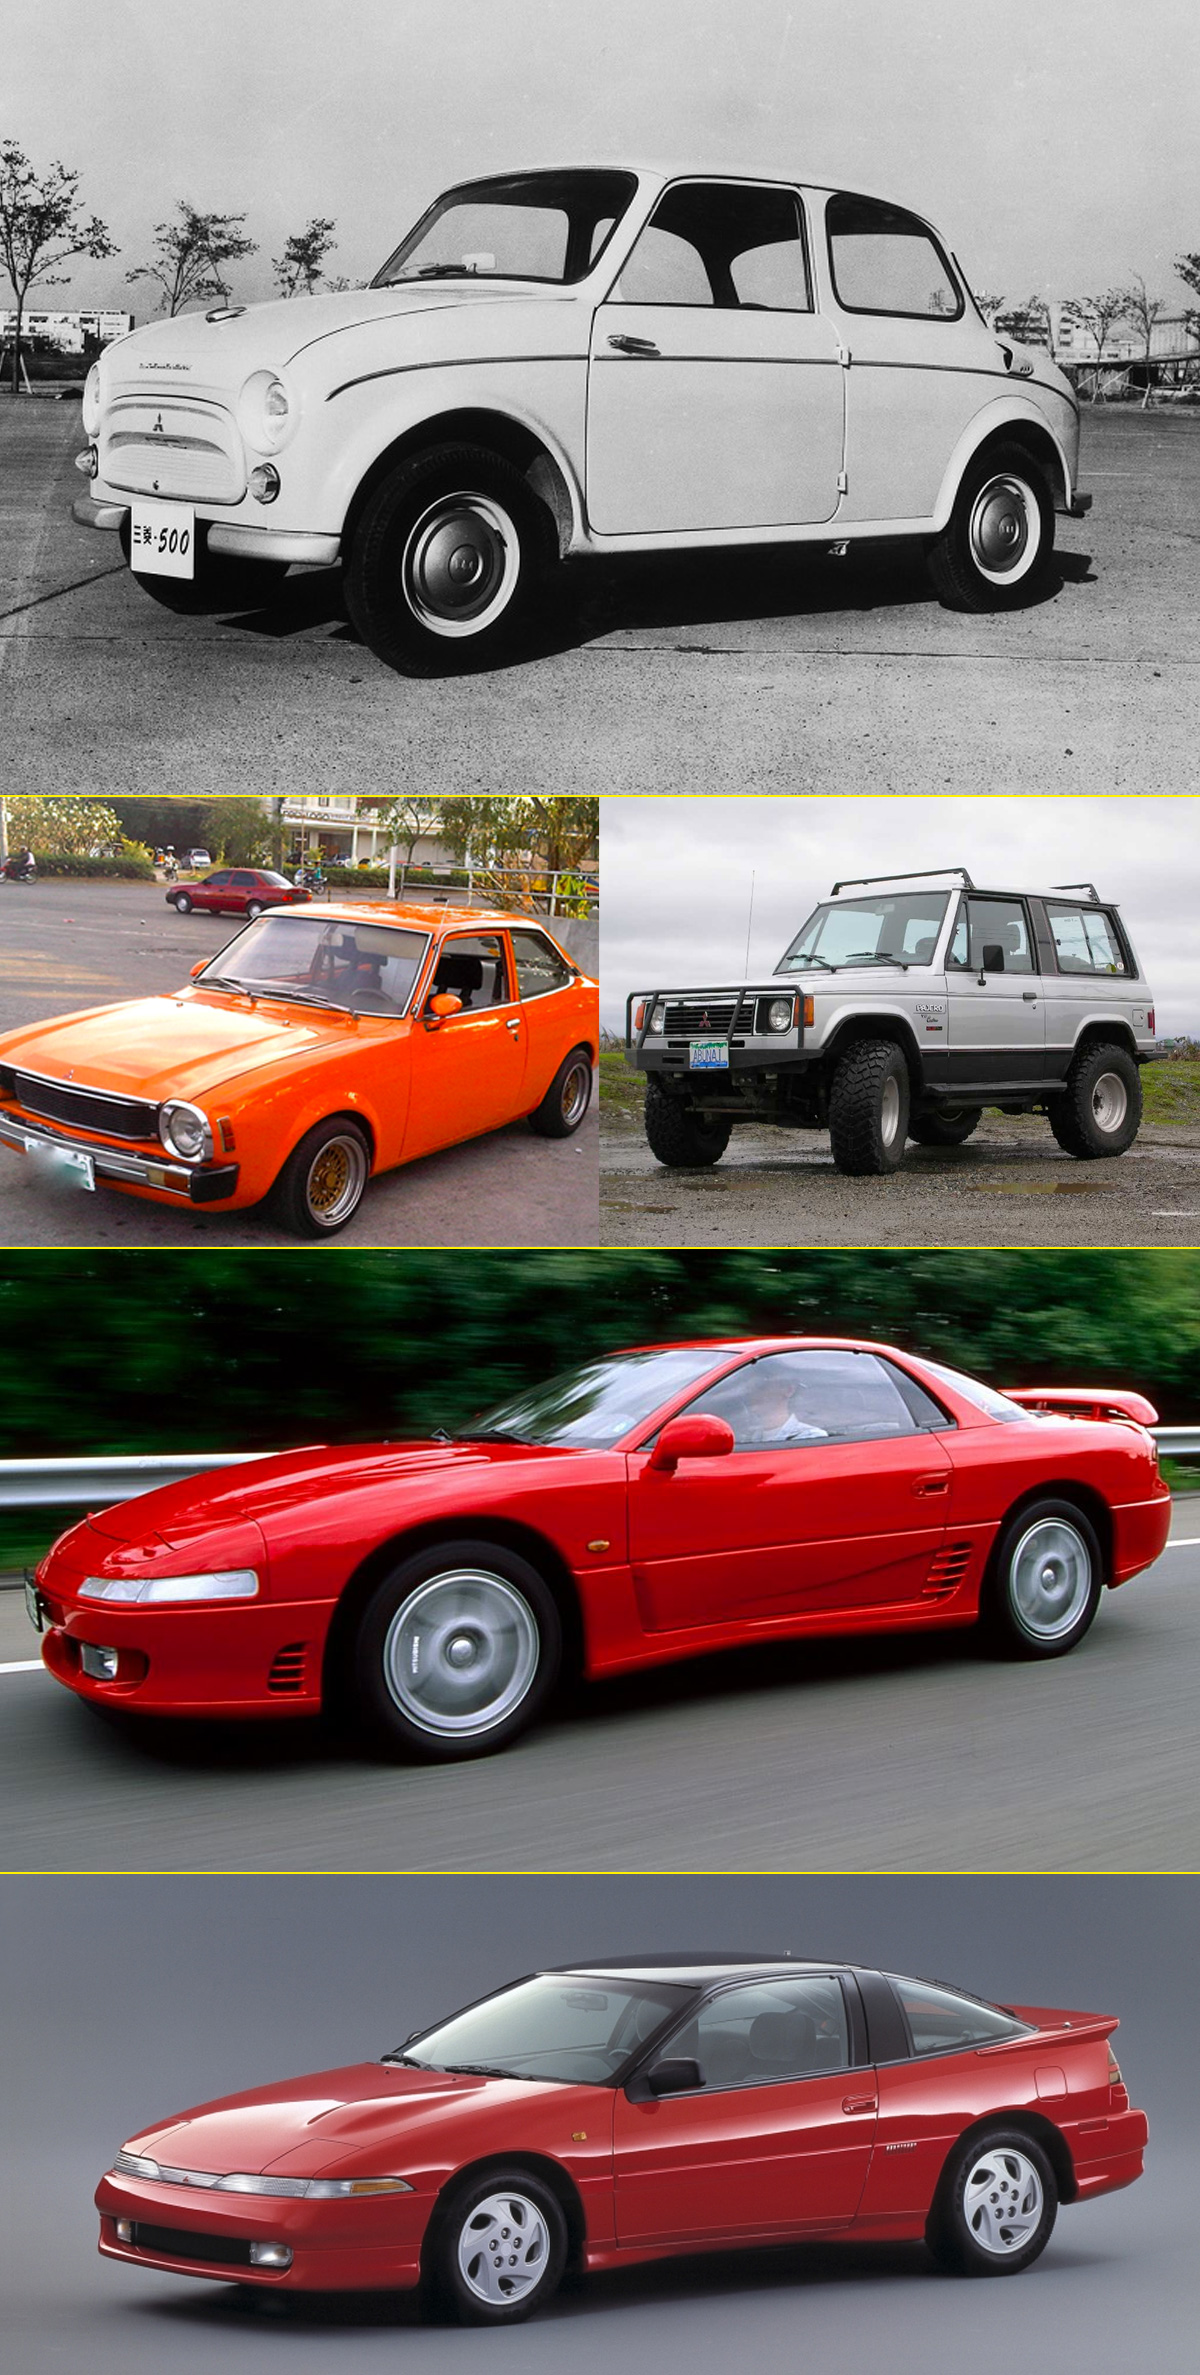 Mitsubishi 500 Deluxe (1962), Lancer (1975), Pajero (1983), 3000GT y Eclipse (1990)